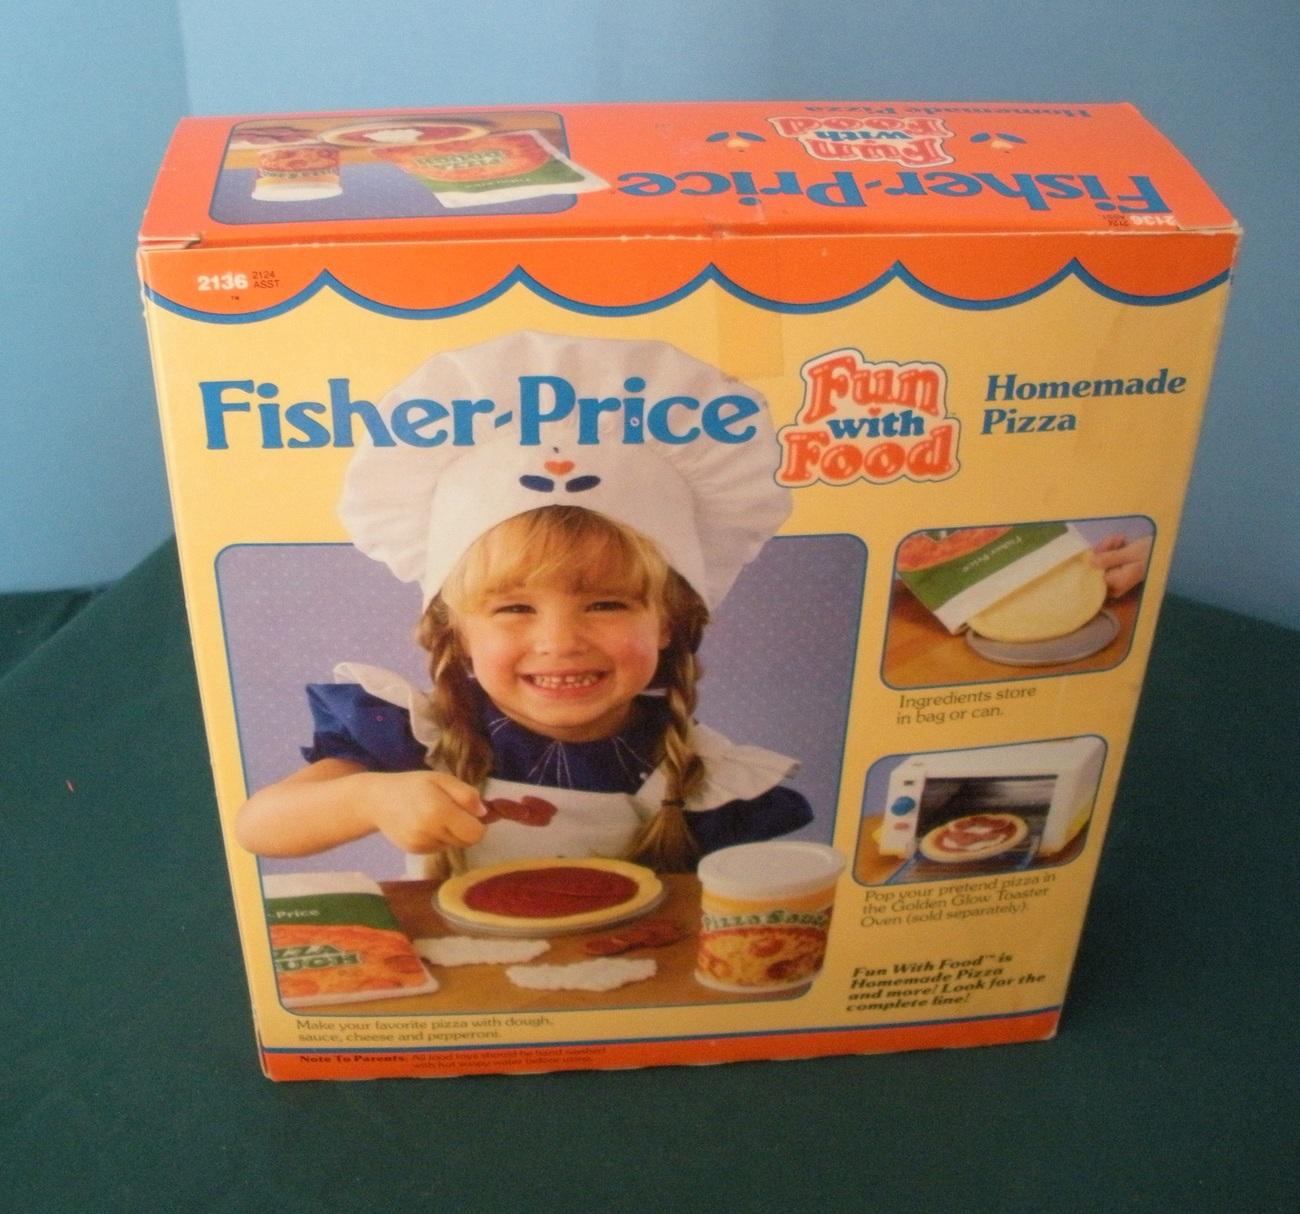 Vintage fisher price fun with food 2136 homemade pizza - Cuisine bilingue fisher price ...